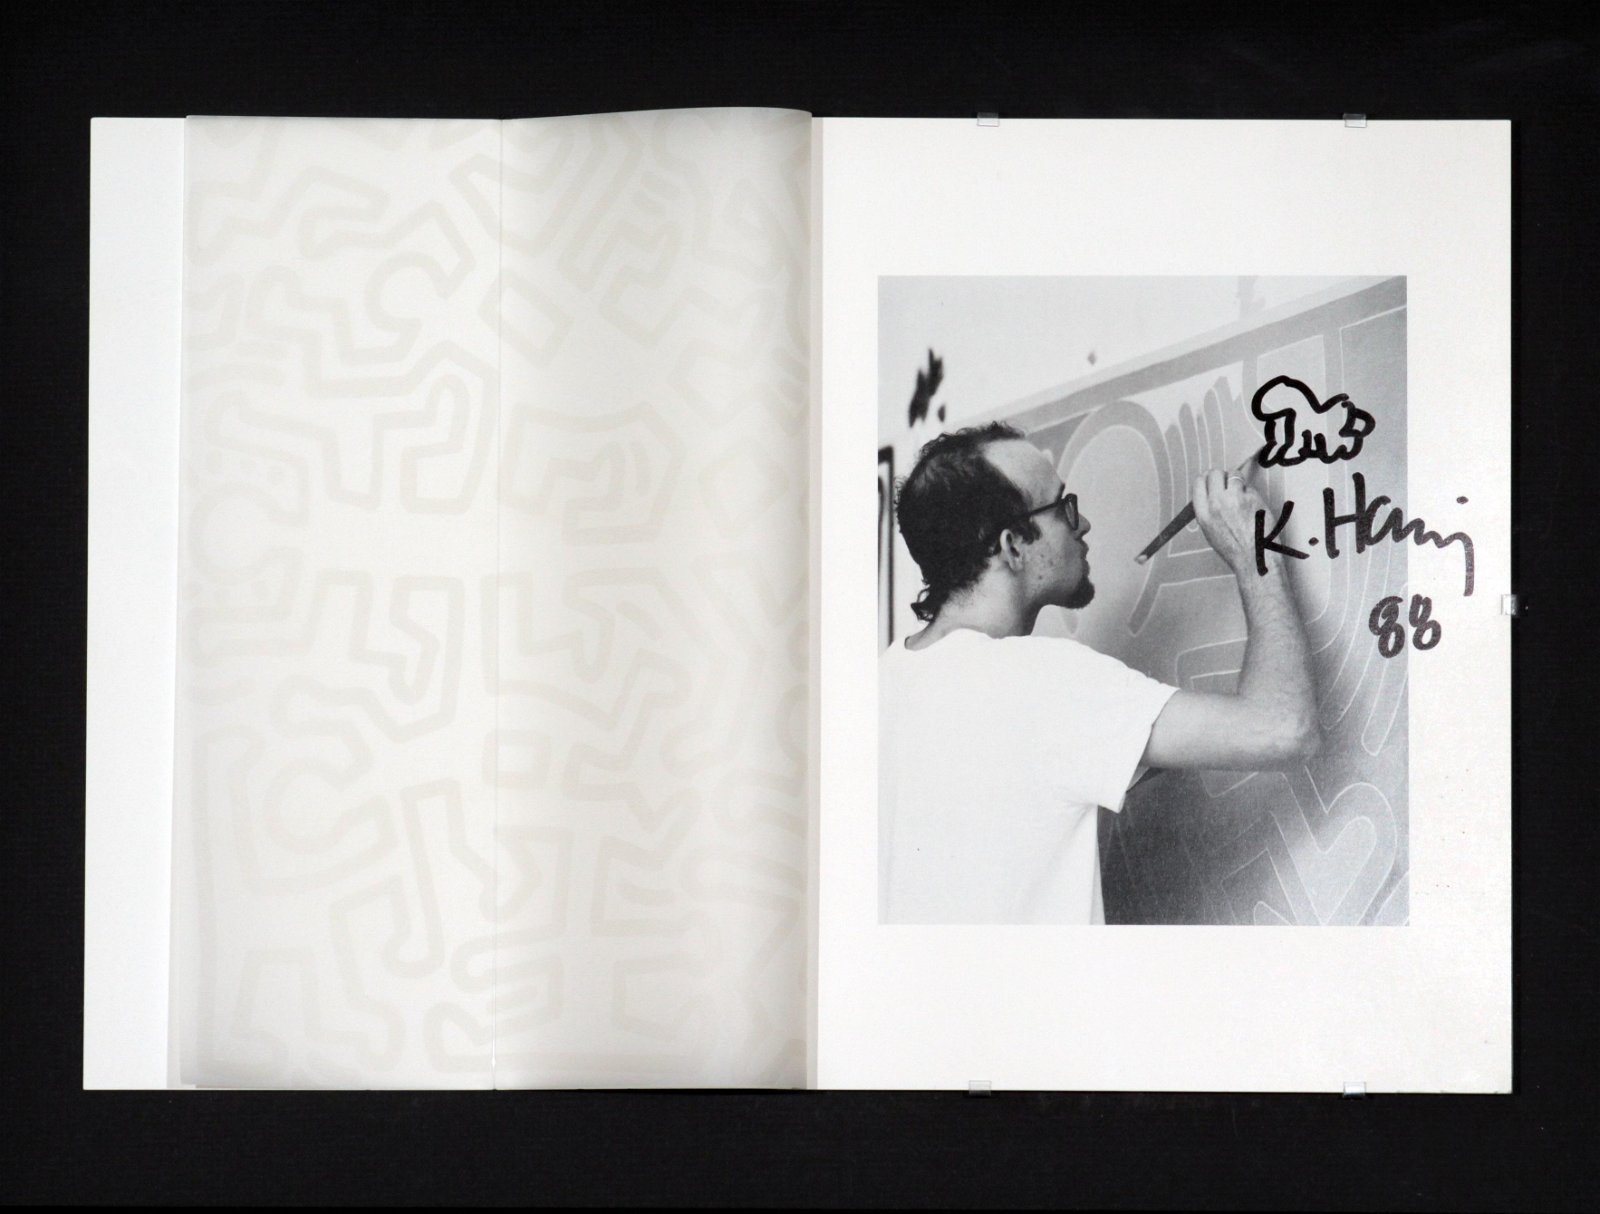 Keith Haring - Baby Remarque with Original Drawing